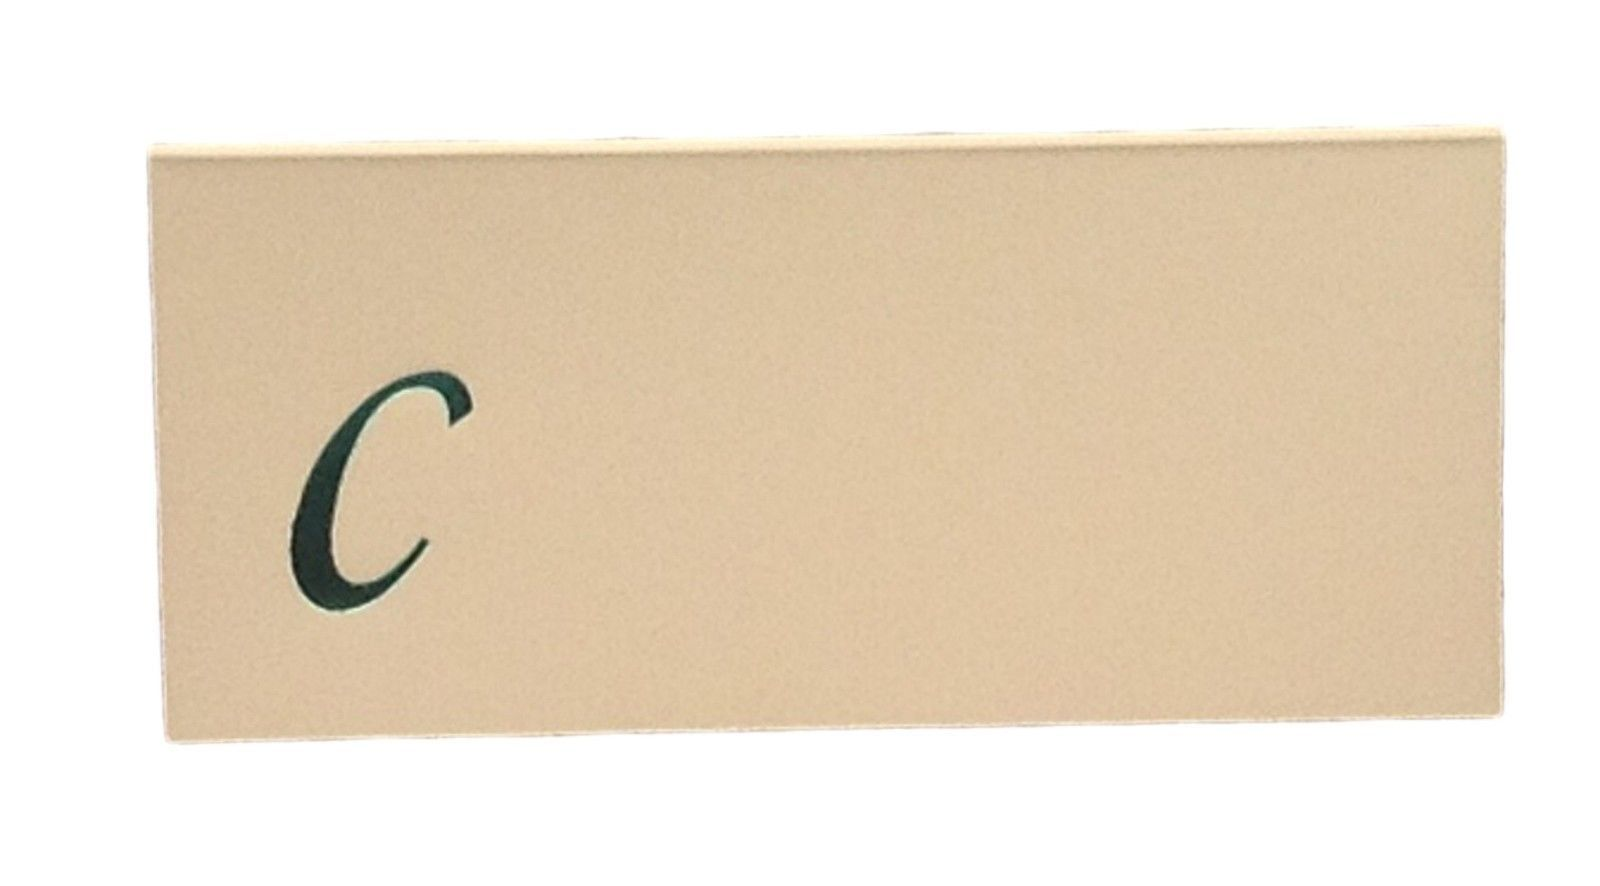 Large C - 50 Monogrammed place cards white or ivory block or script font image 3